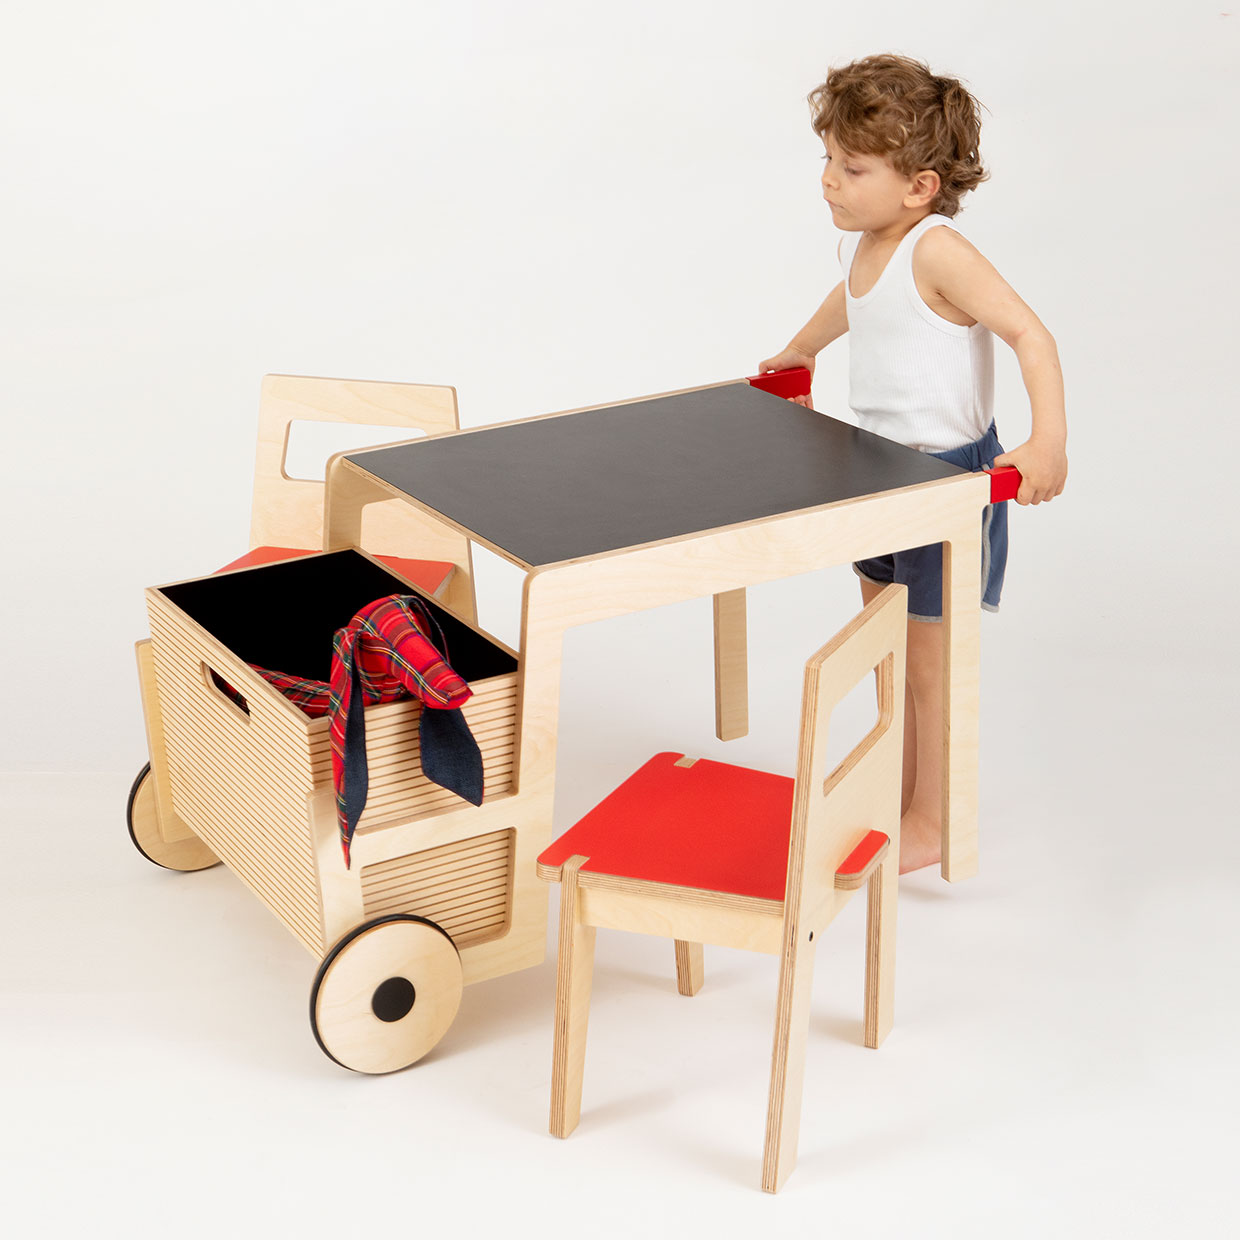 playful-childrens-play-table-wheelbarrow-table-by-Sarit-Shani-Hay_Titel